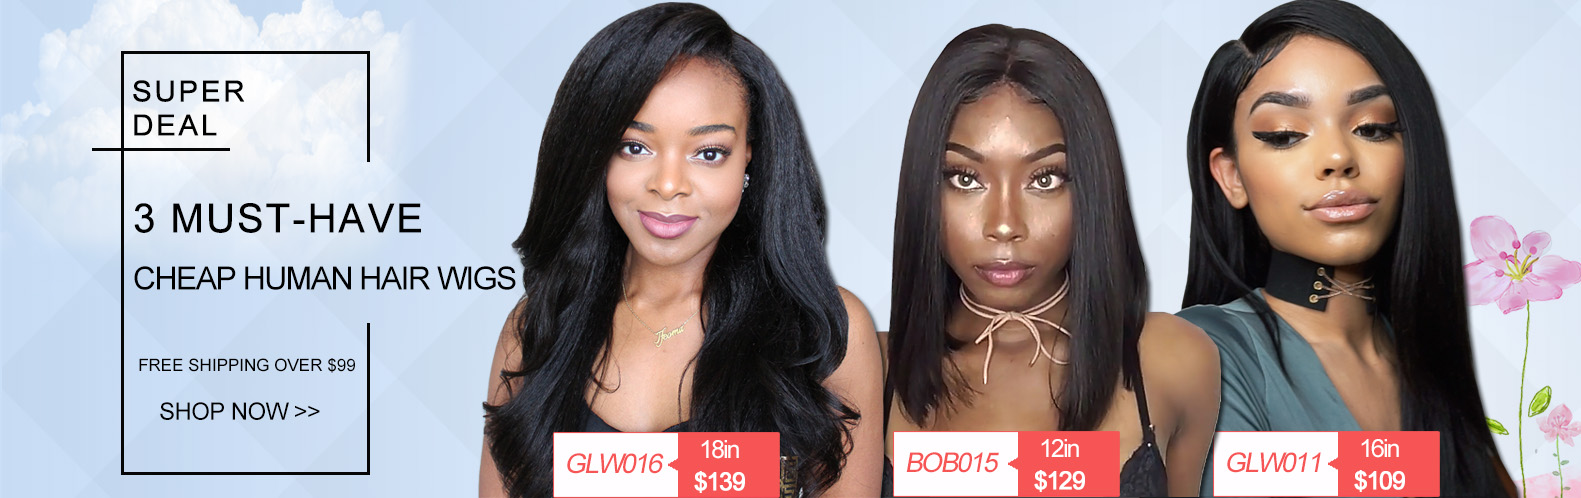 Best human hair extensions lace wigs hair weave hair pieces best human hair extensions lace wigs hair weave hair pieces hair extensions bestlacewigs pmusecretfo Choice Image